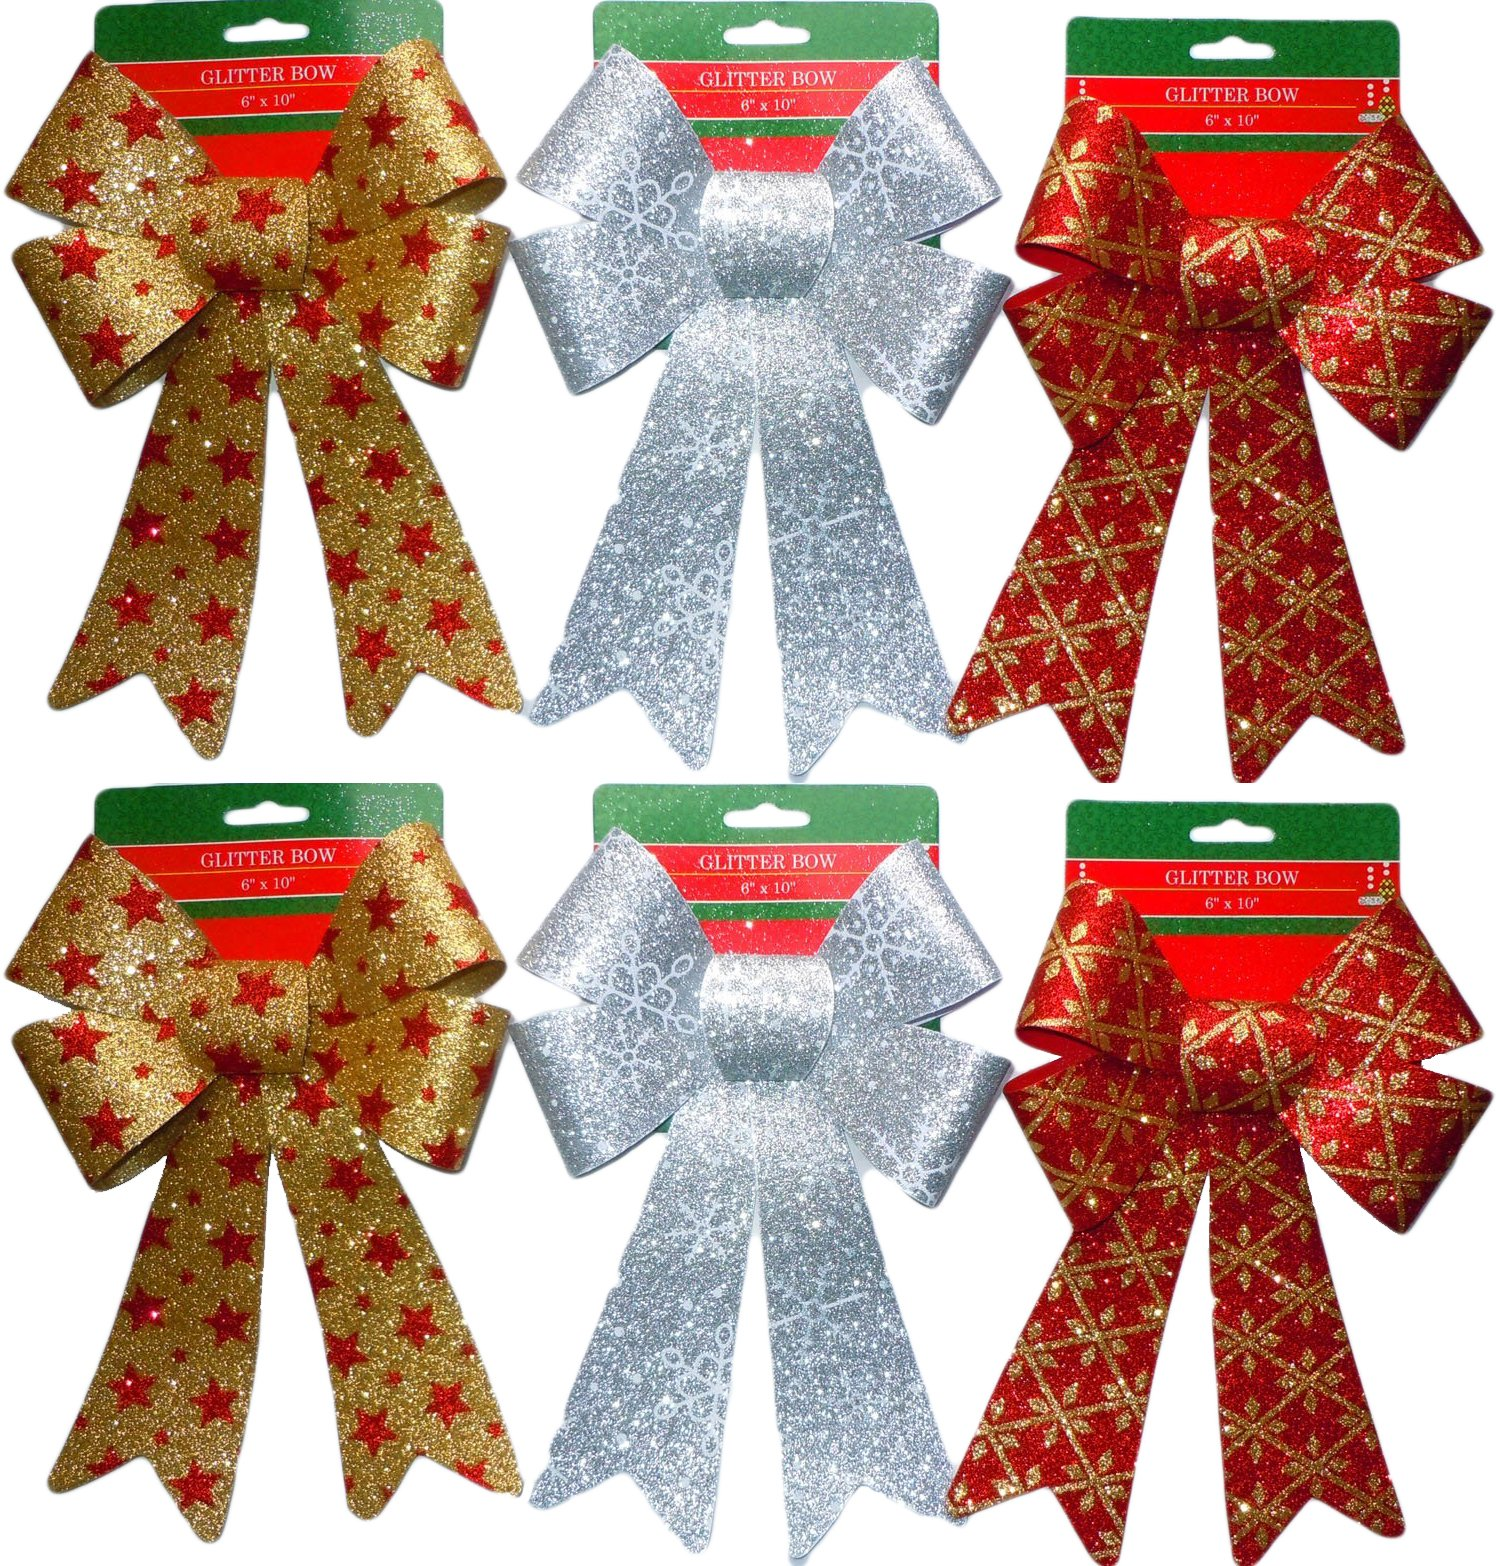 Glitter Christmas Bows 6x10 Inches - 6 Large Bows